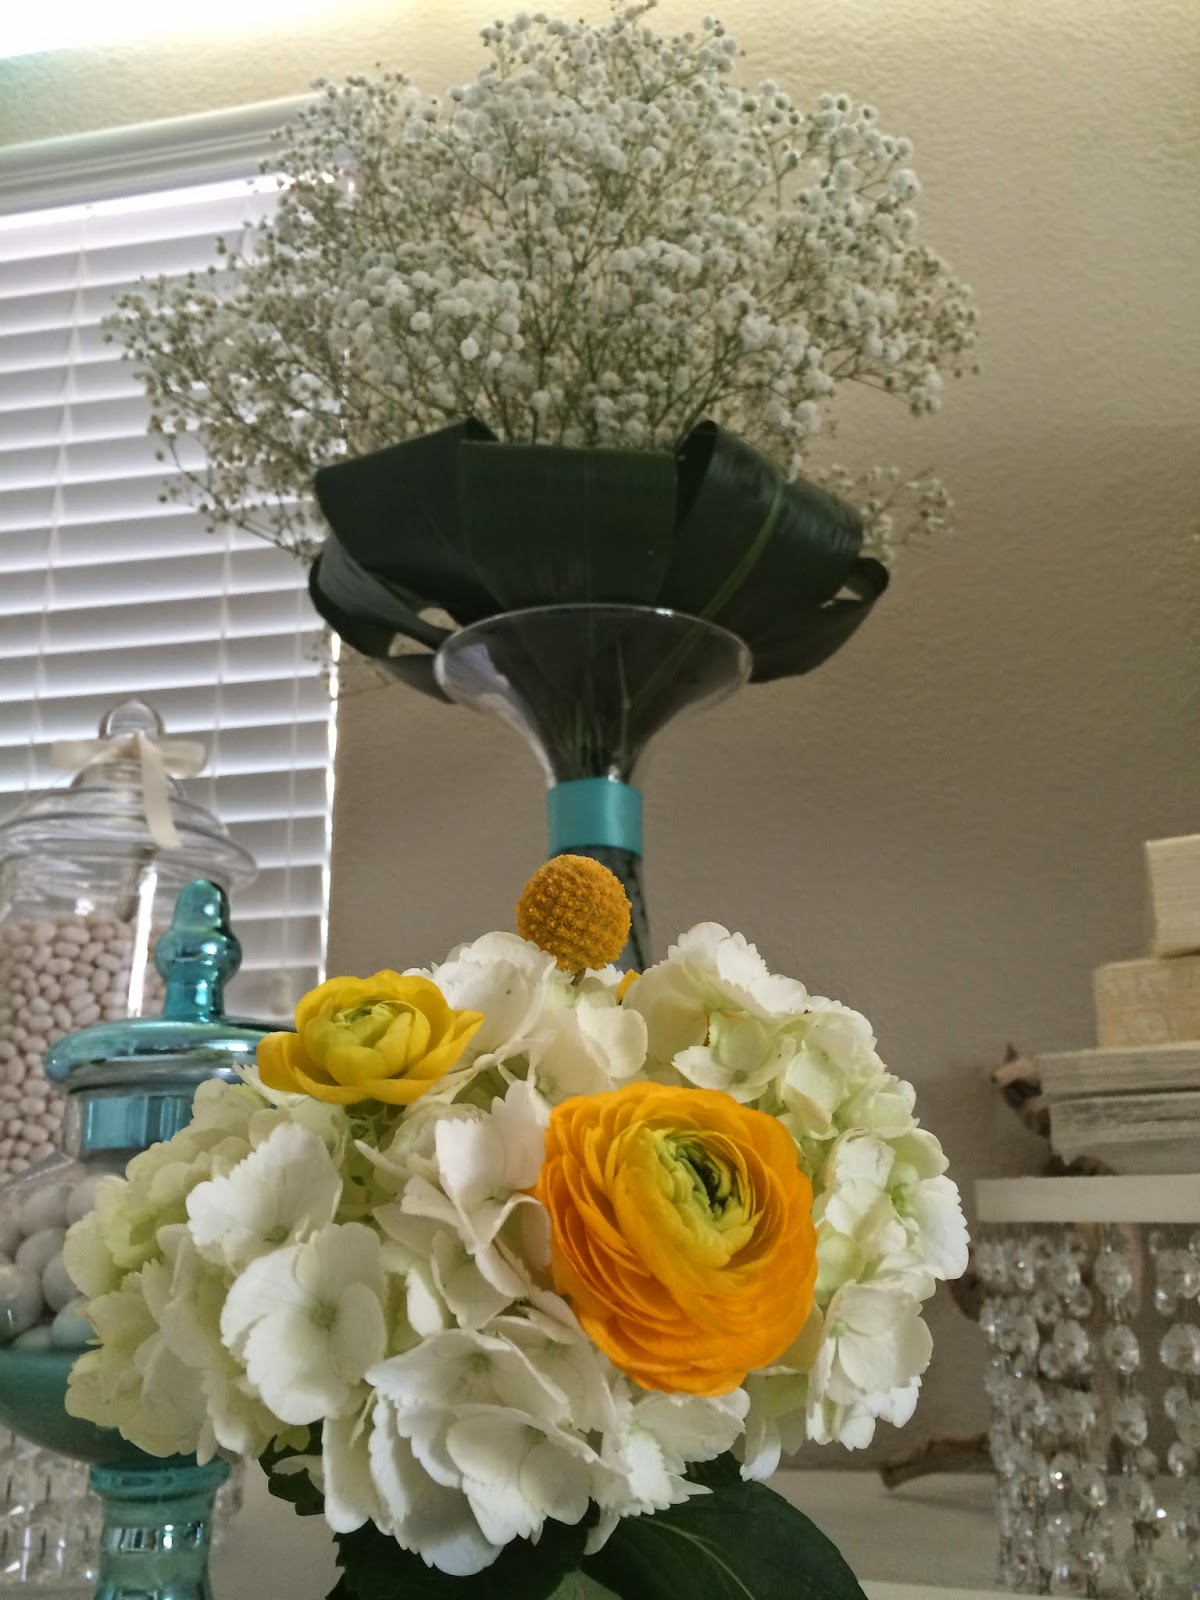 Flower Table Centerpieces For Baby Shower : Dreamark events baby shower party decoration